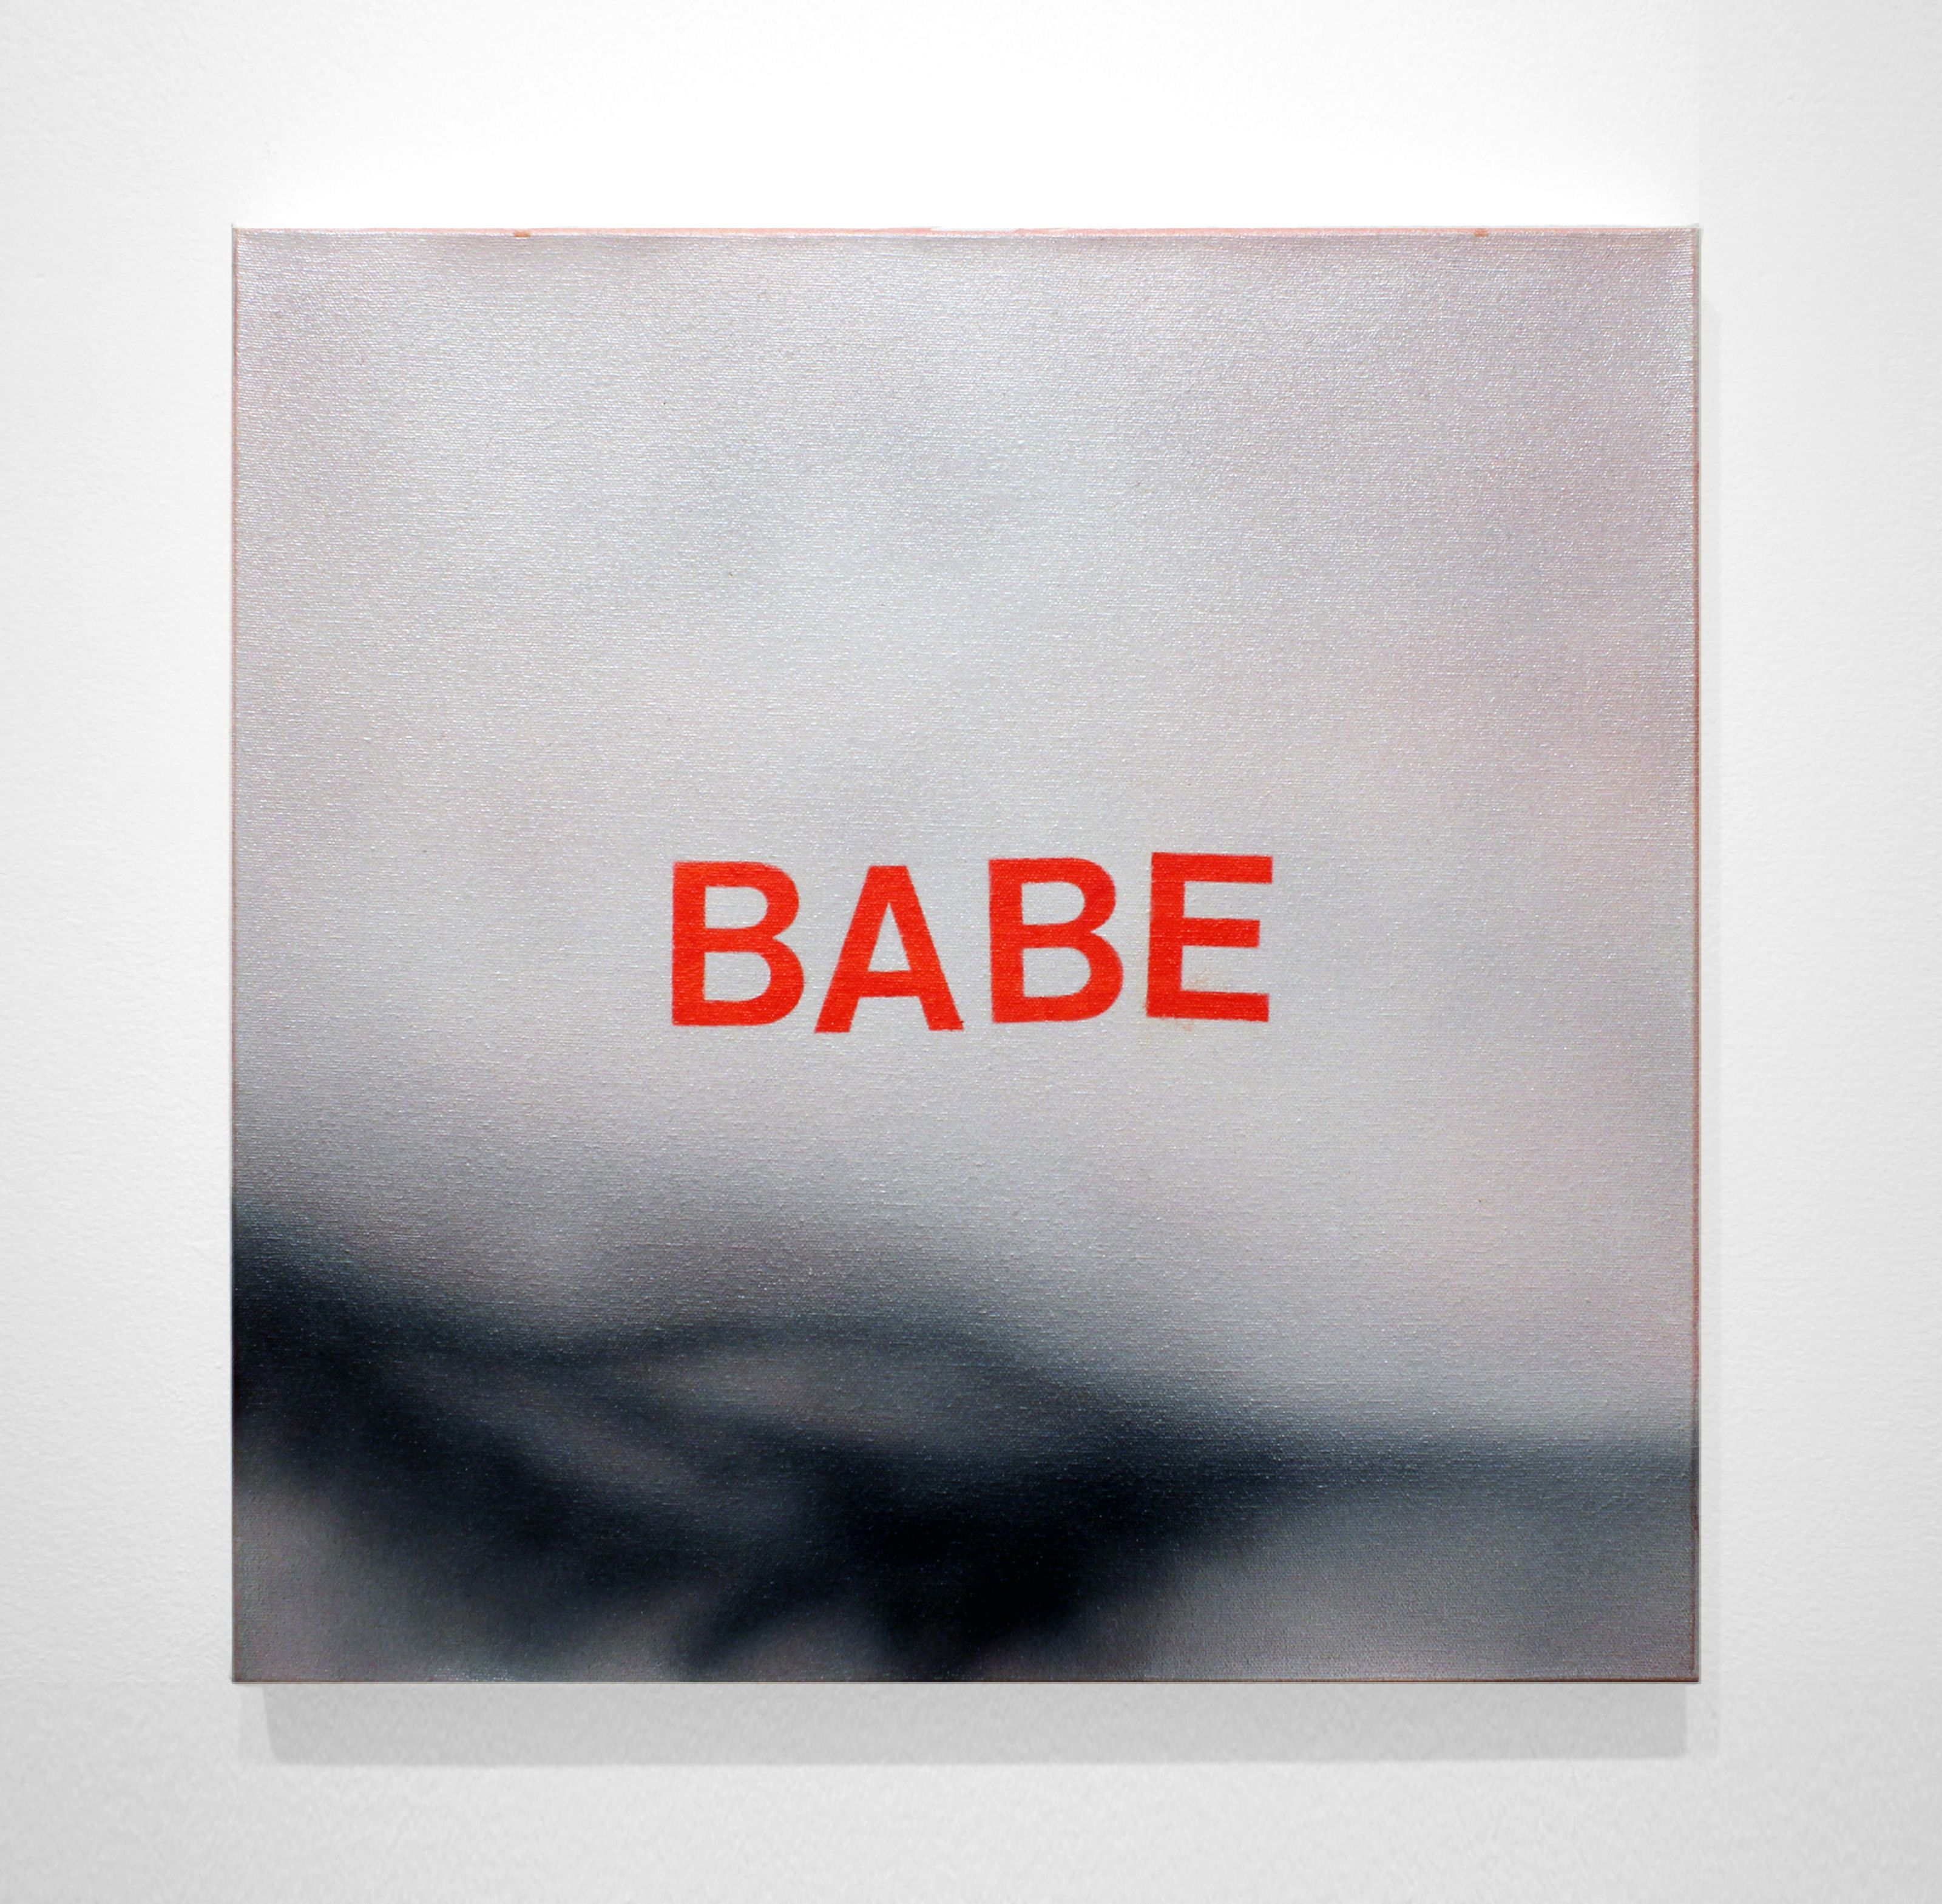 BABE NUMBER 3 BY BETTY TOMPKINS  / COURTESY OF THE ARTIST AND P•P•O•W, NEW YORK